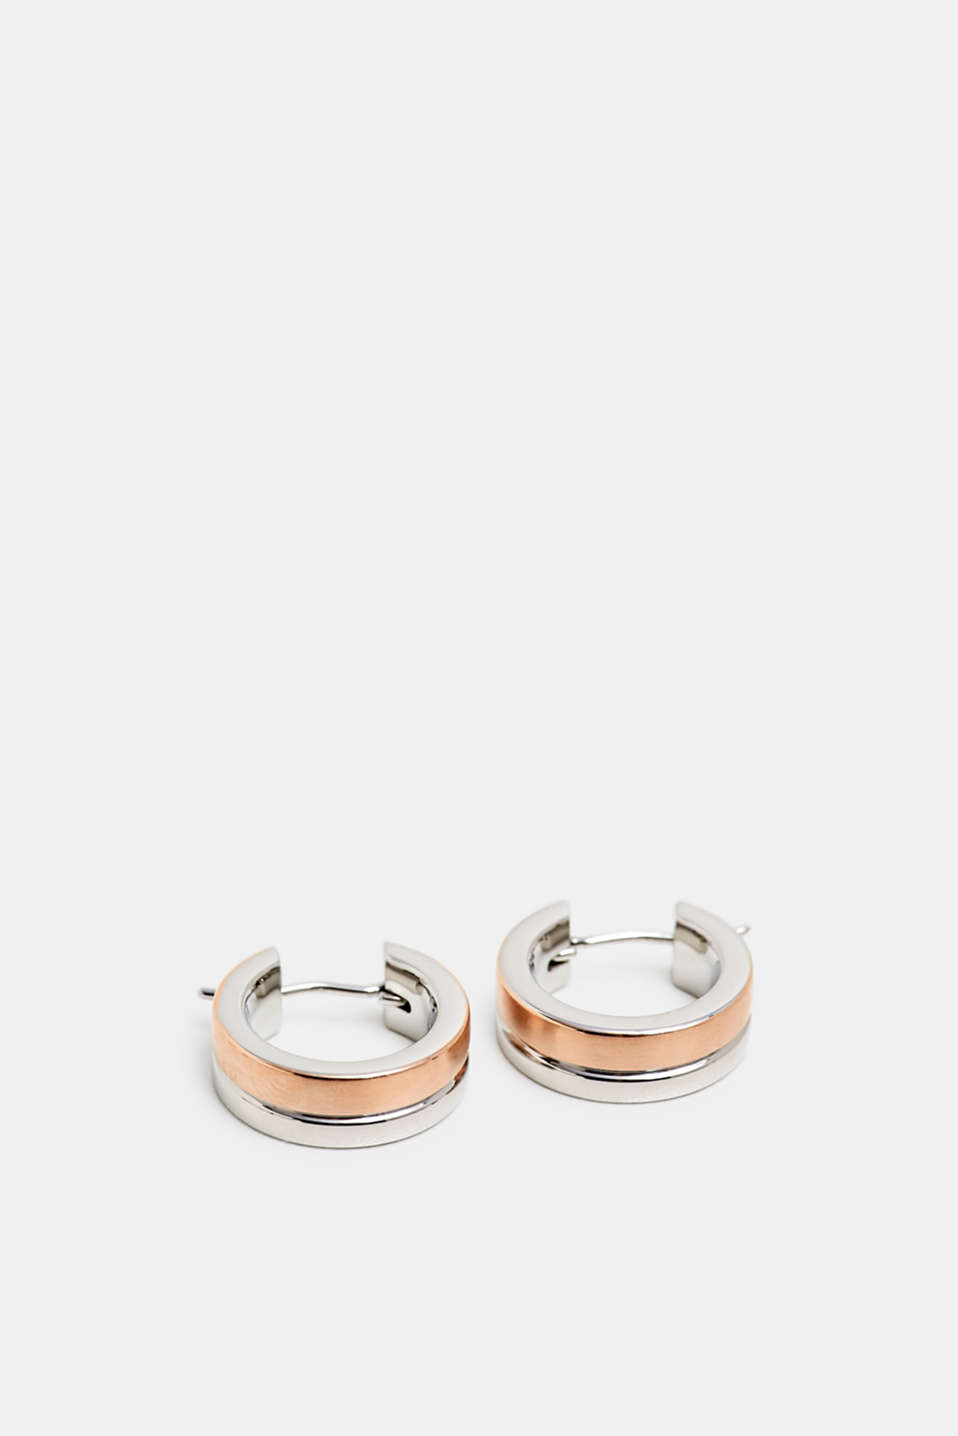 Esprit - Two-tone earrings made of stainless steel